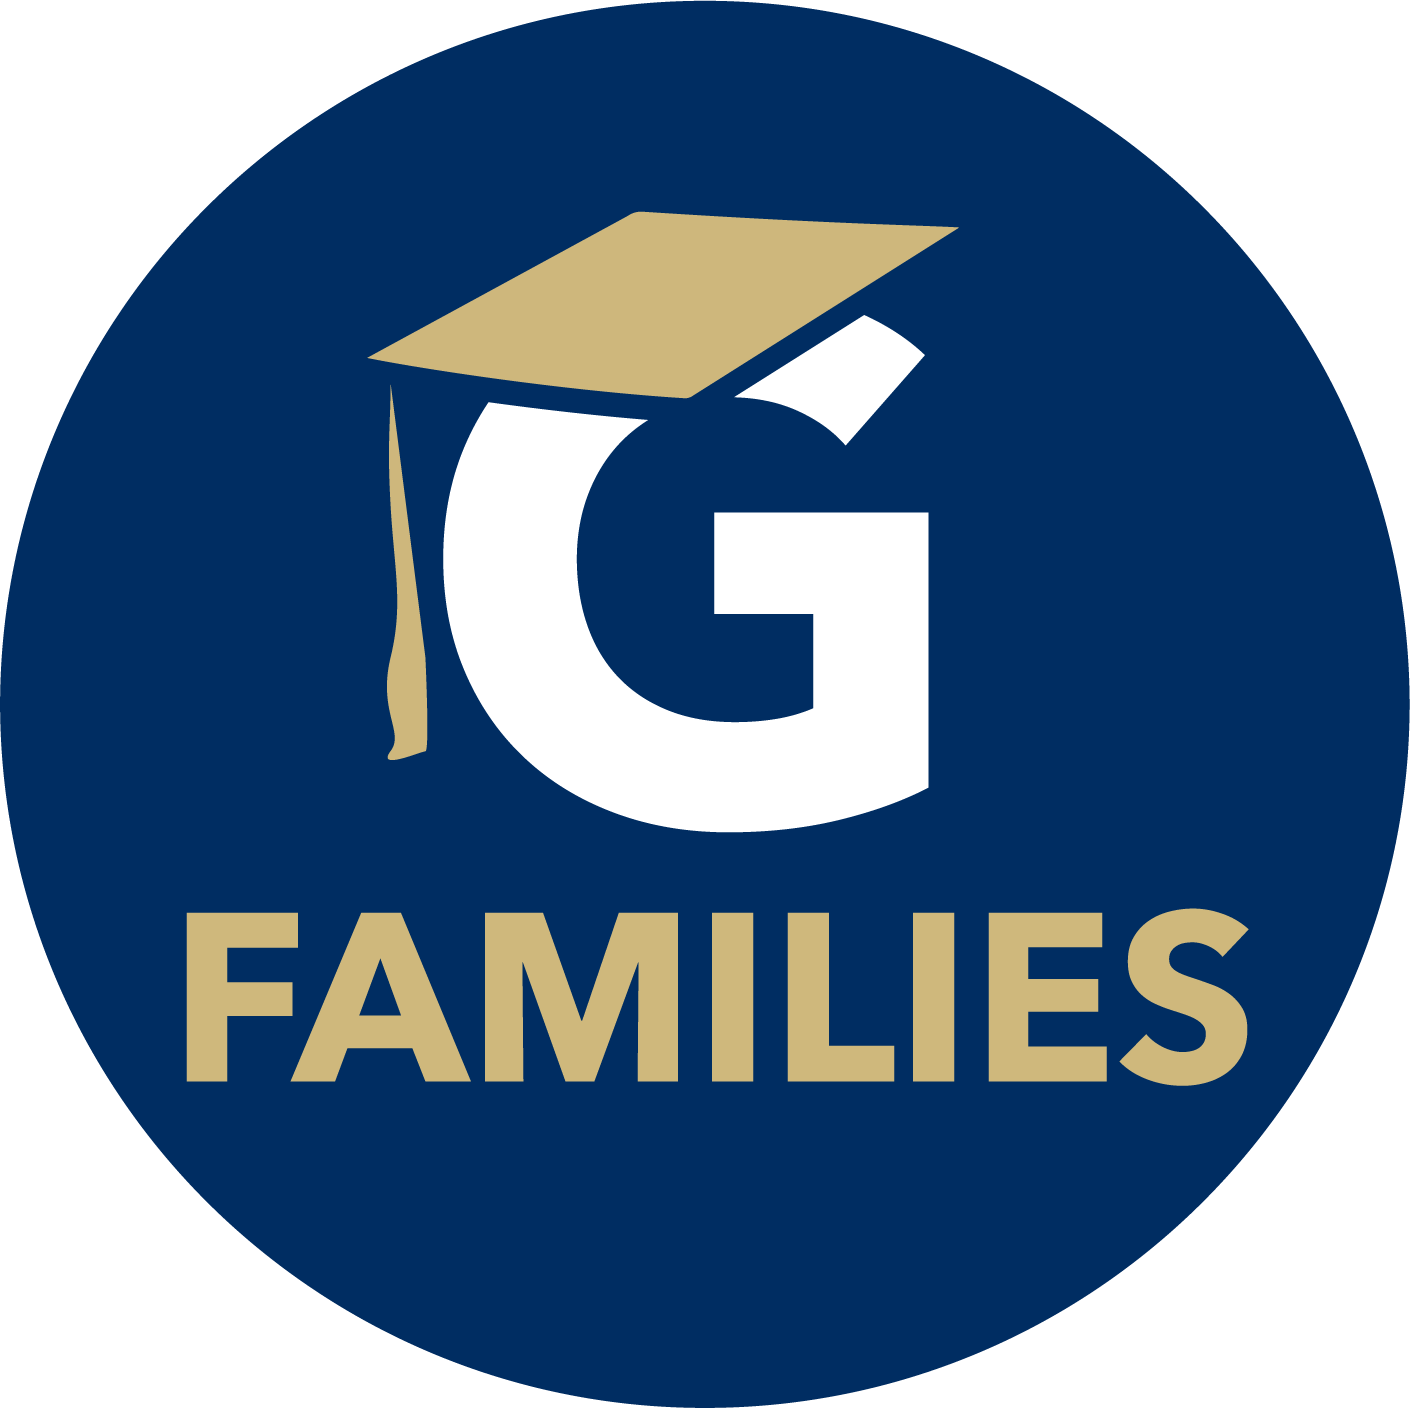 GPS Resources for Families